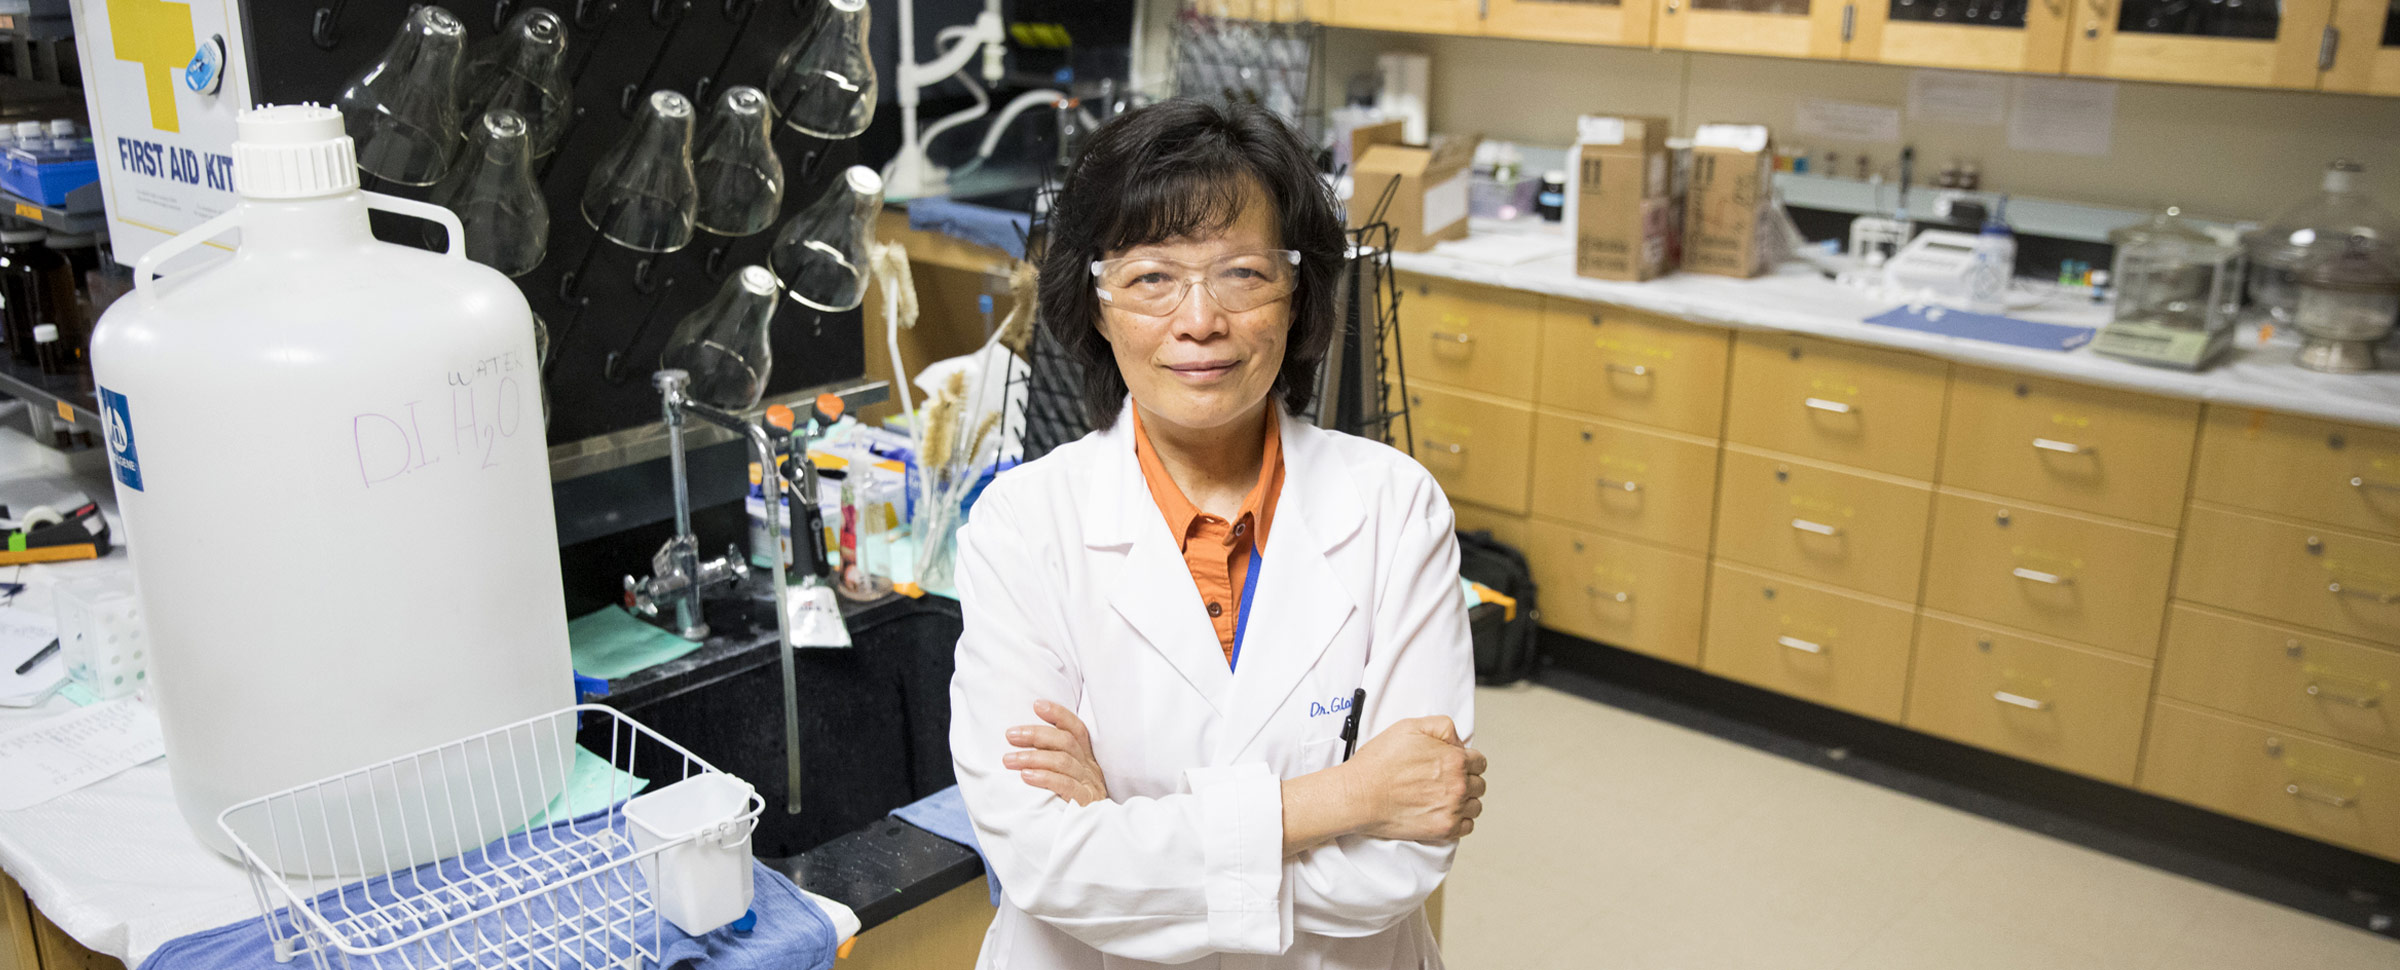 UTEP Faculty Member Contributes to Advances in Cancer Detection